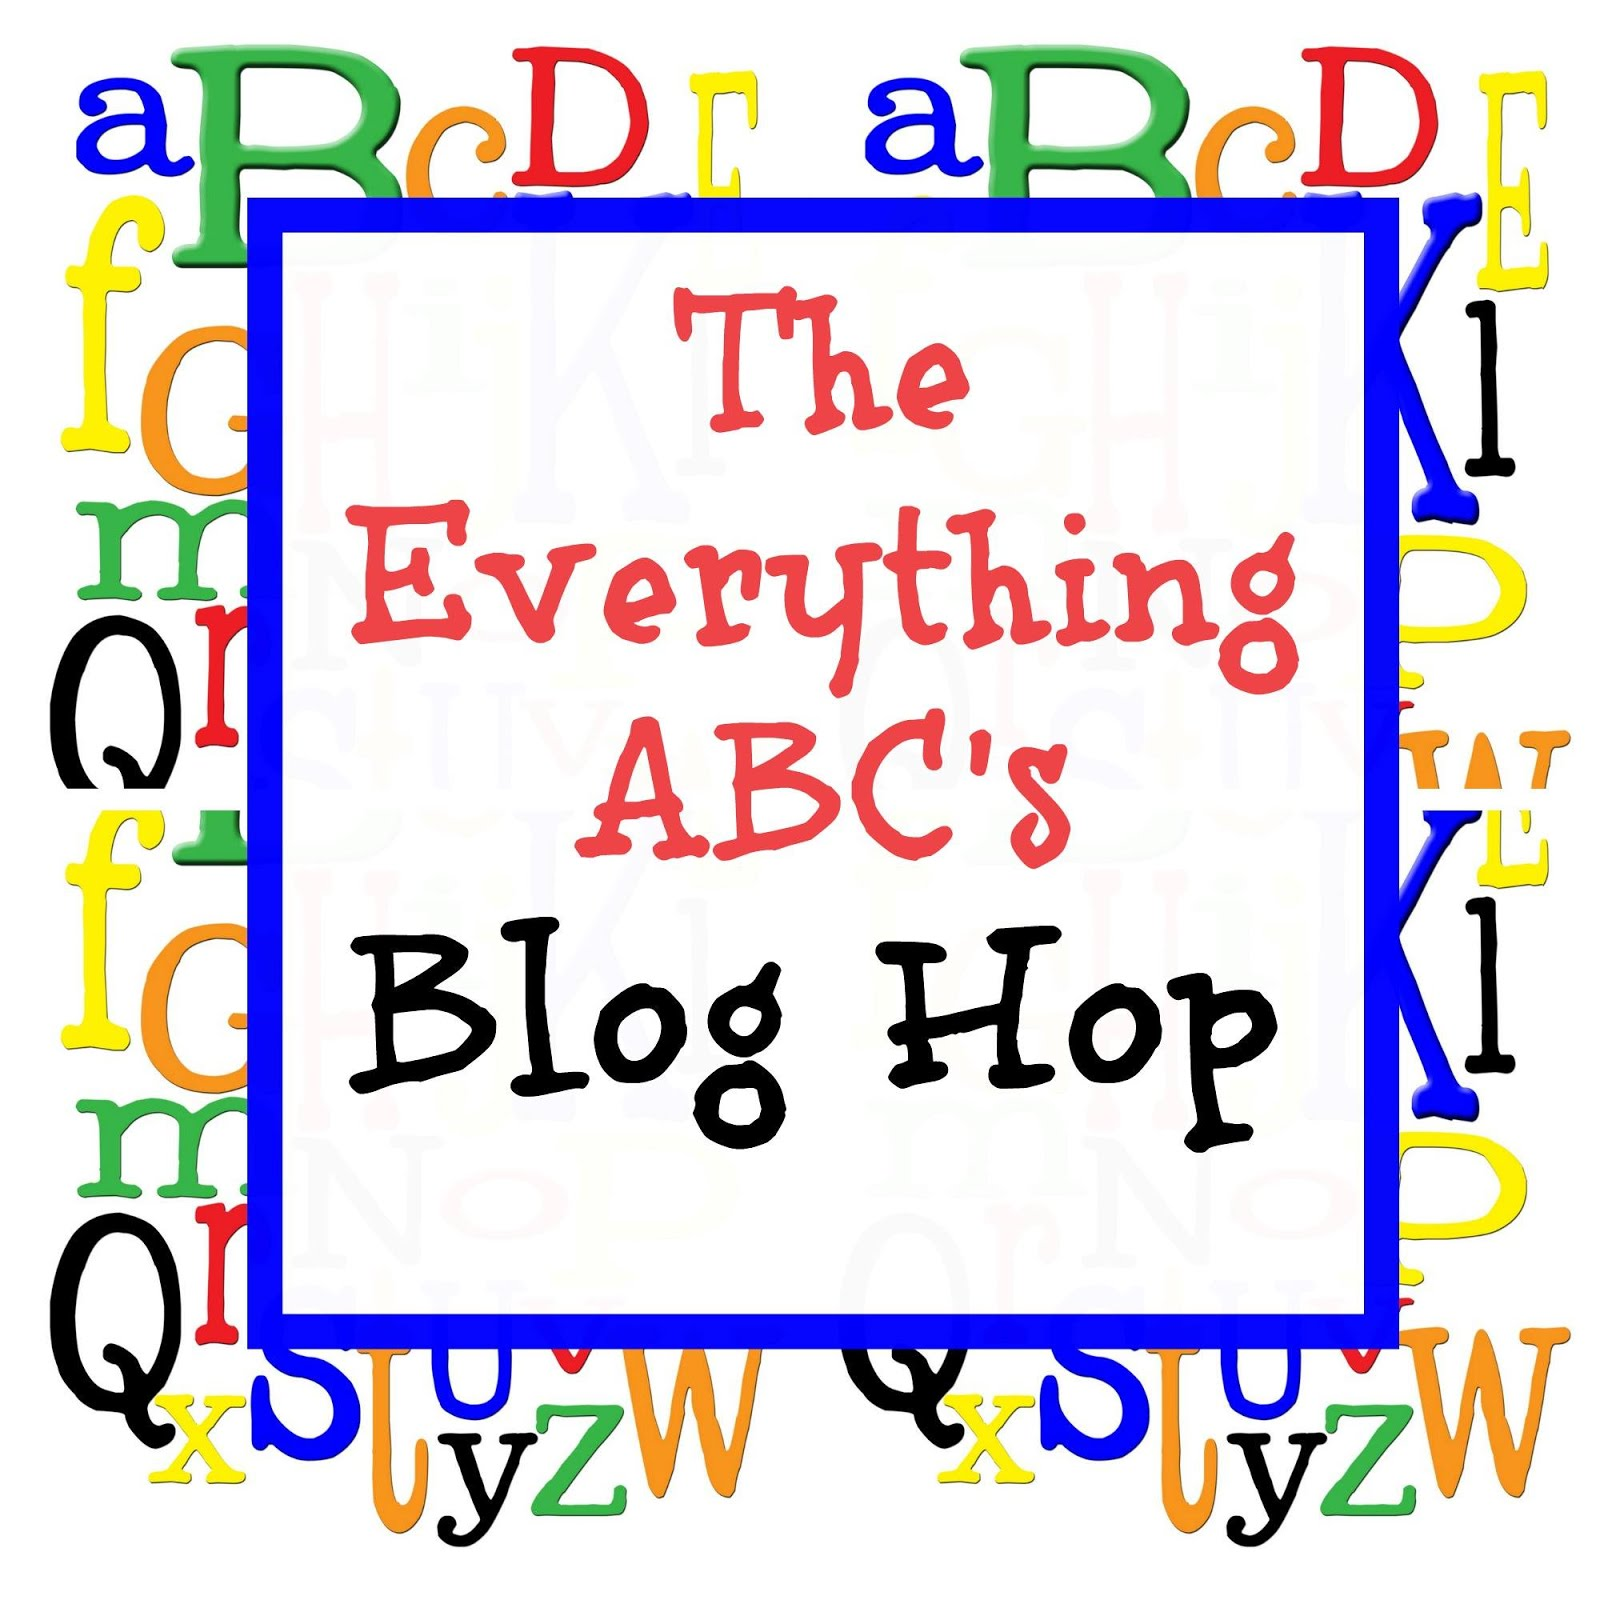 Everything ABC's Blog Hop